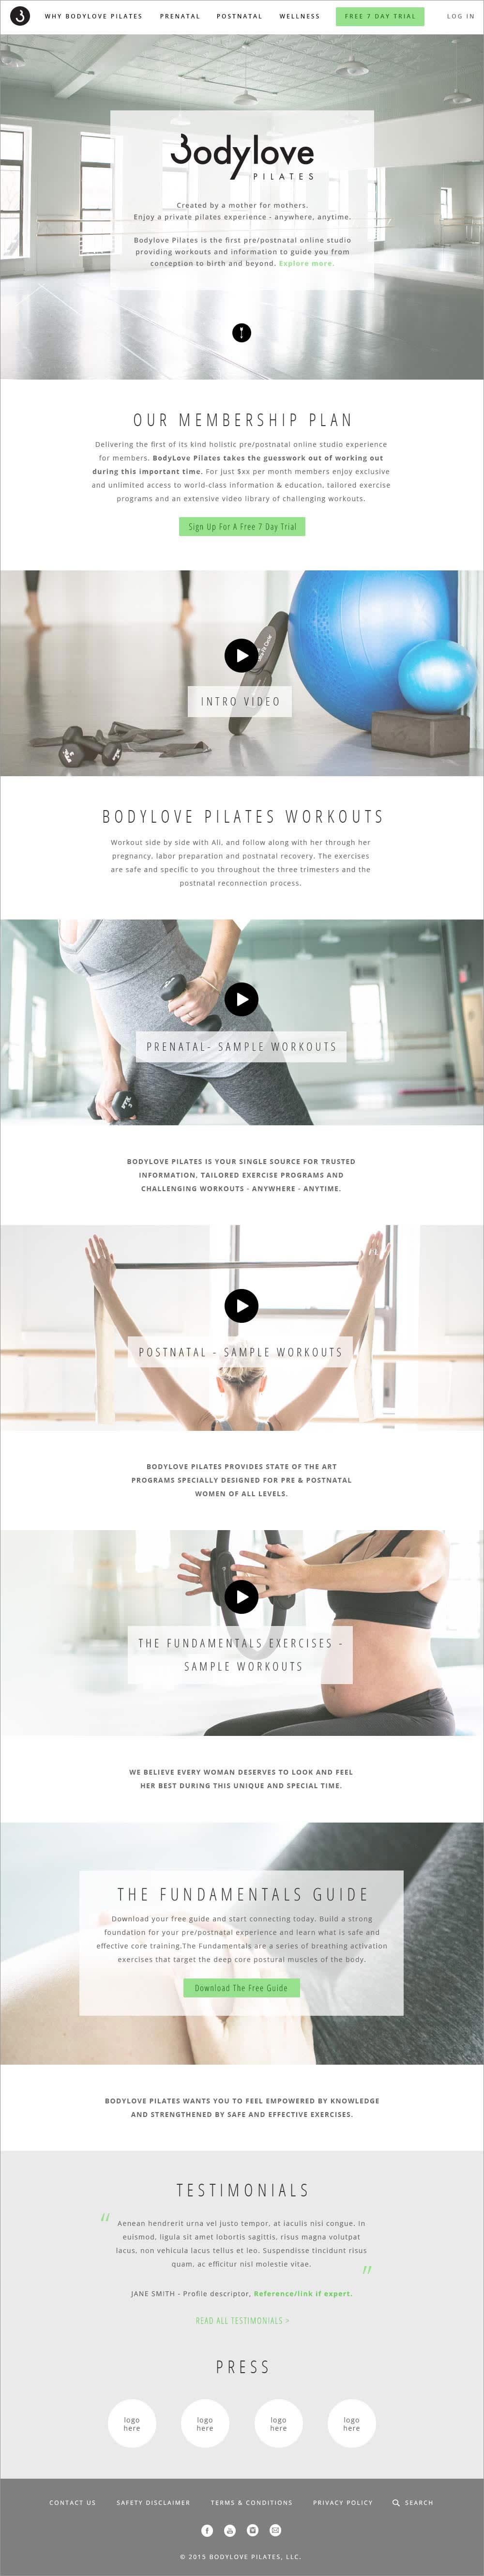 Brand New Website for Pilates Business